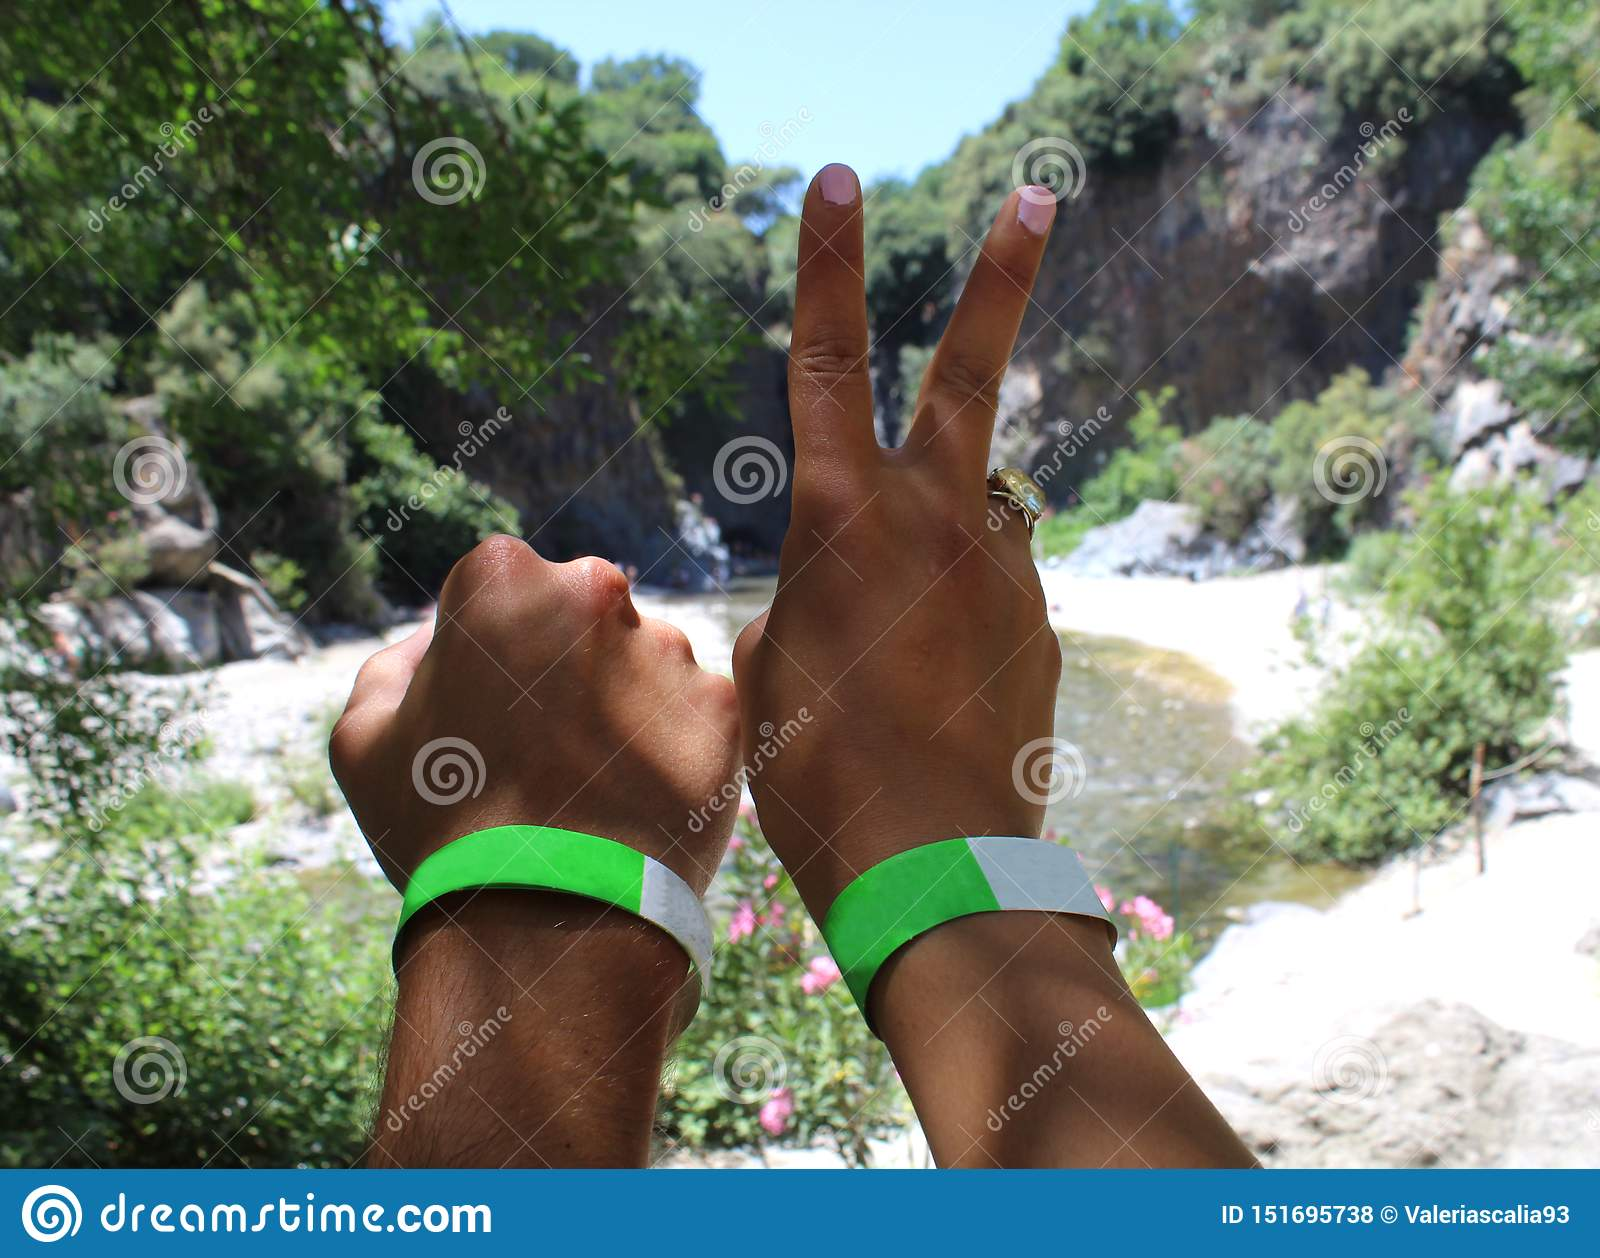 The hands of a couple of young traveler at a river gorges park